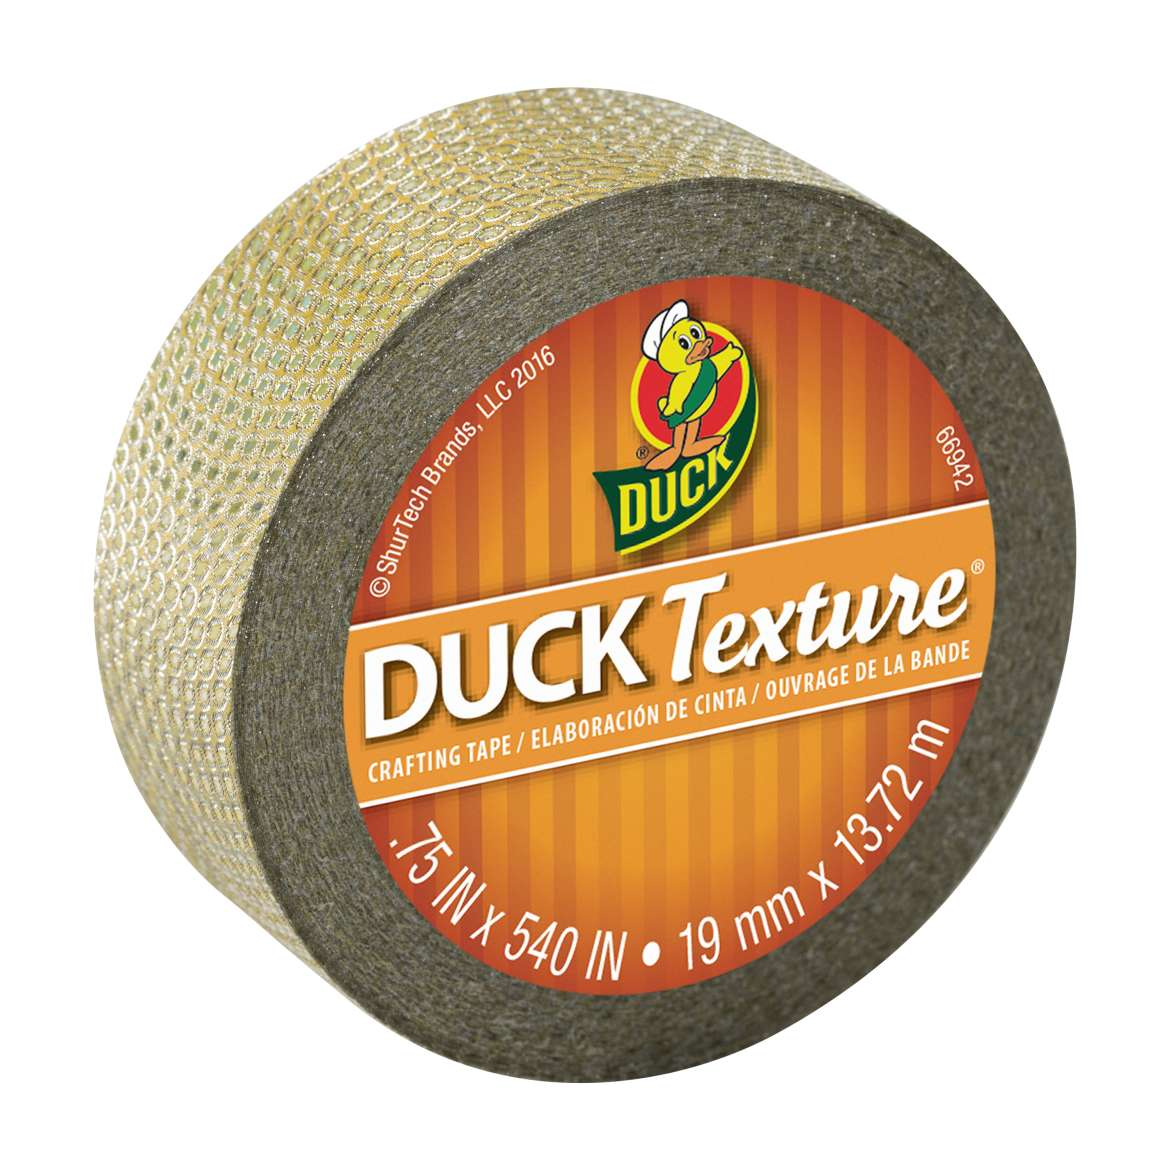 Duck Texture® Crafting Tape Image